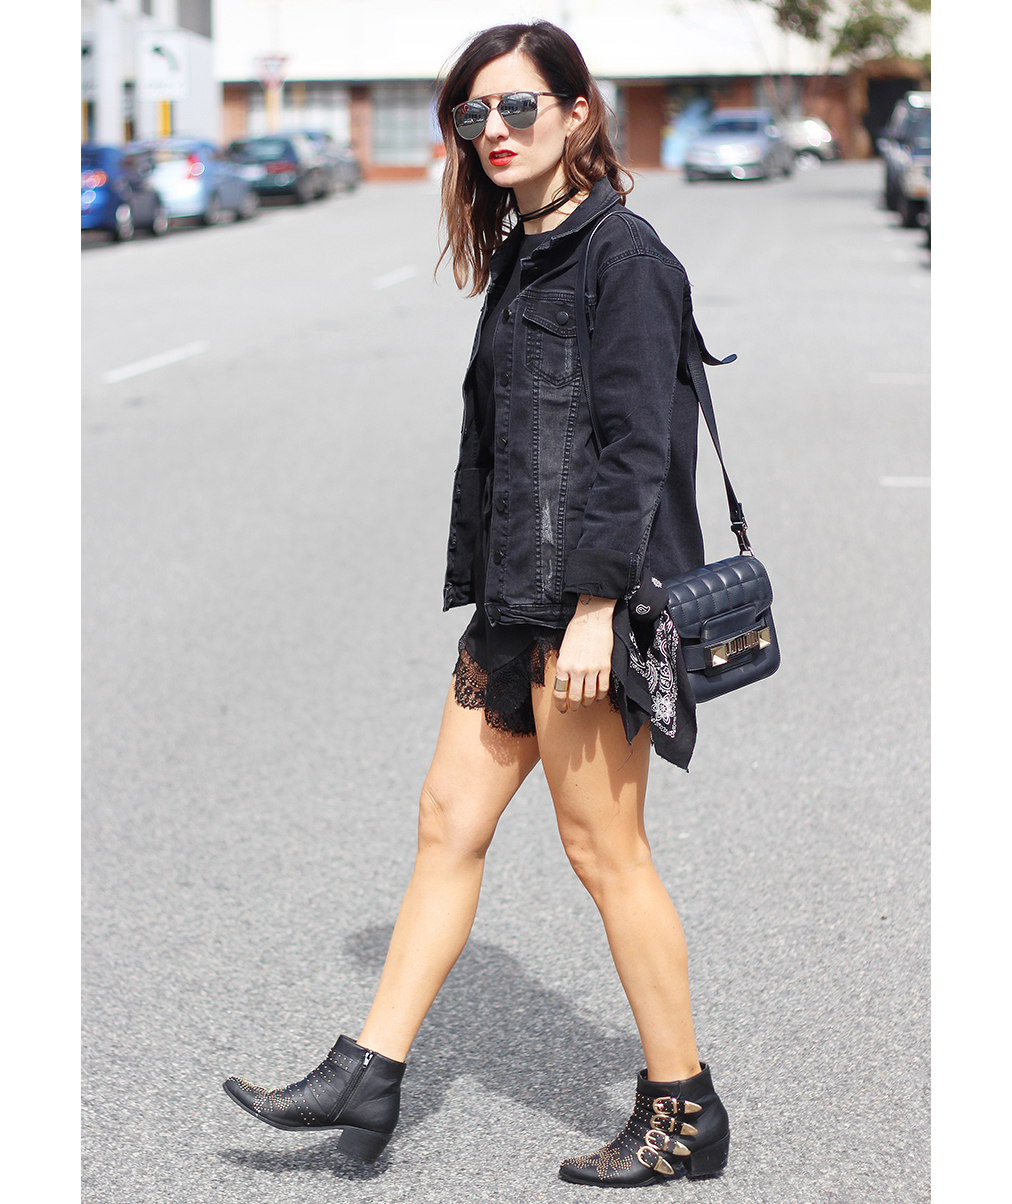 Woman wearing black denim jacket with edgy black accessories